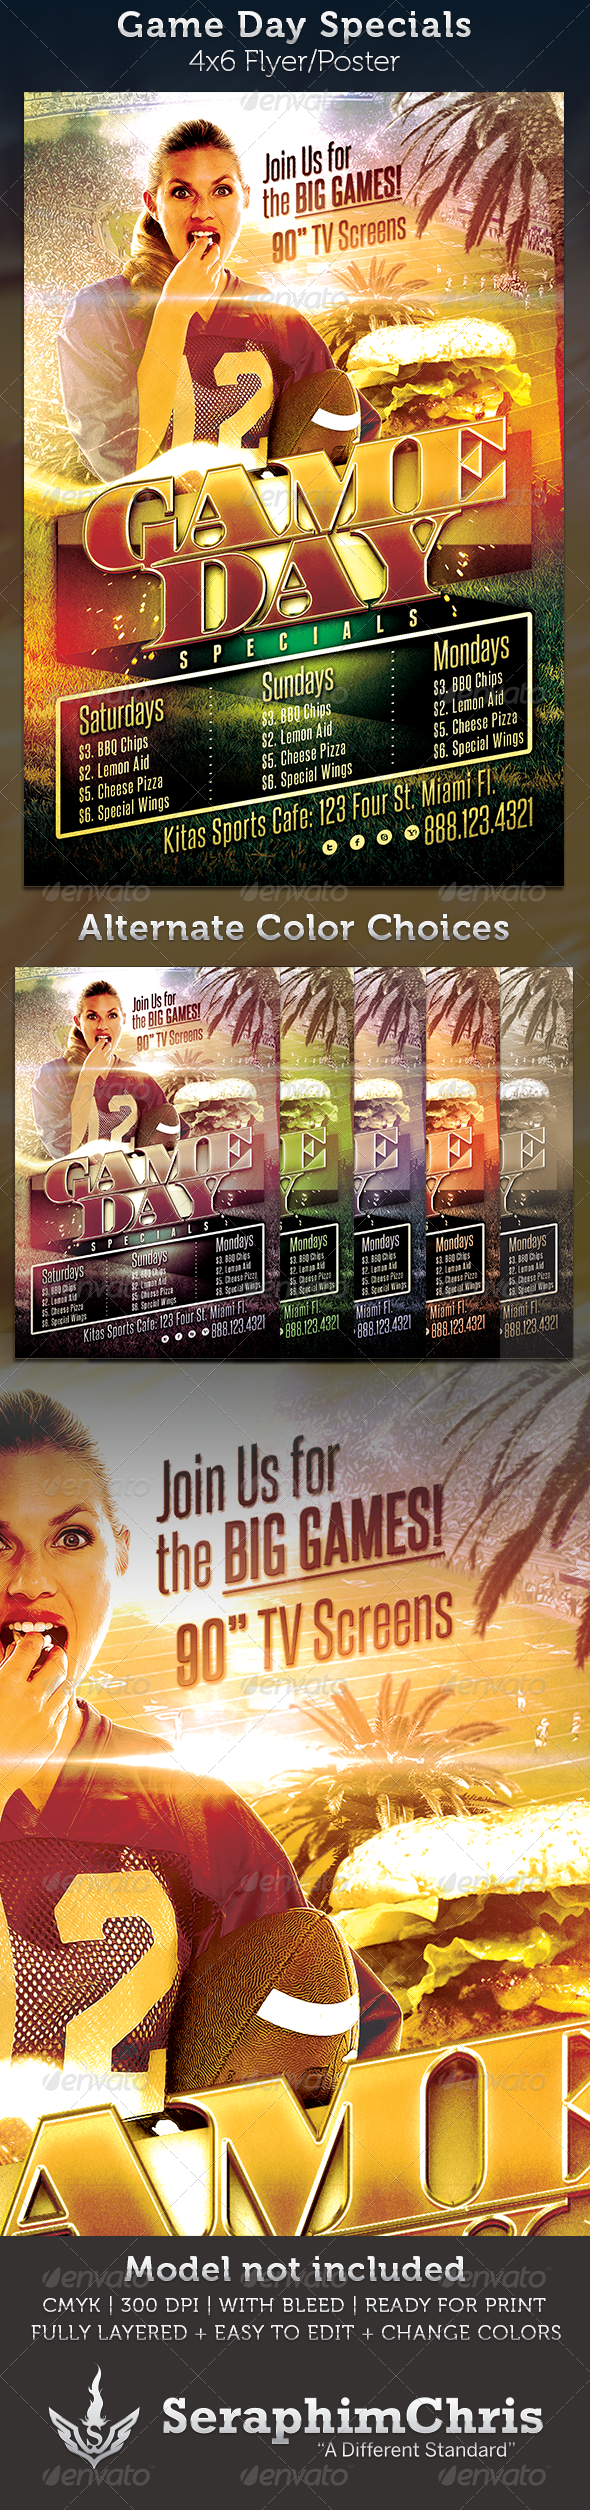 Game Day Specials: Football Flyer Template - Sports Events